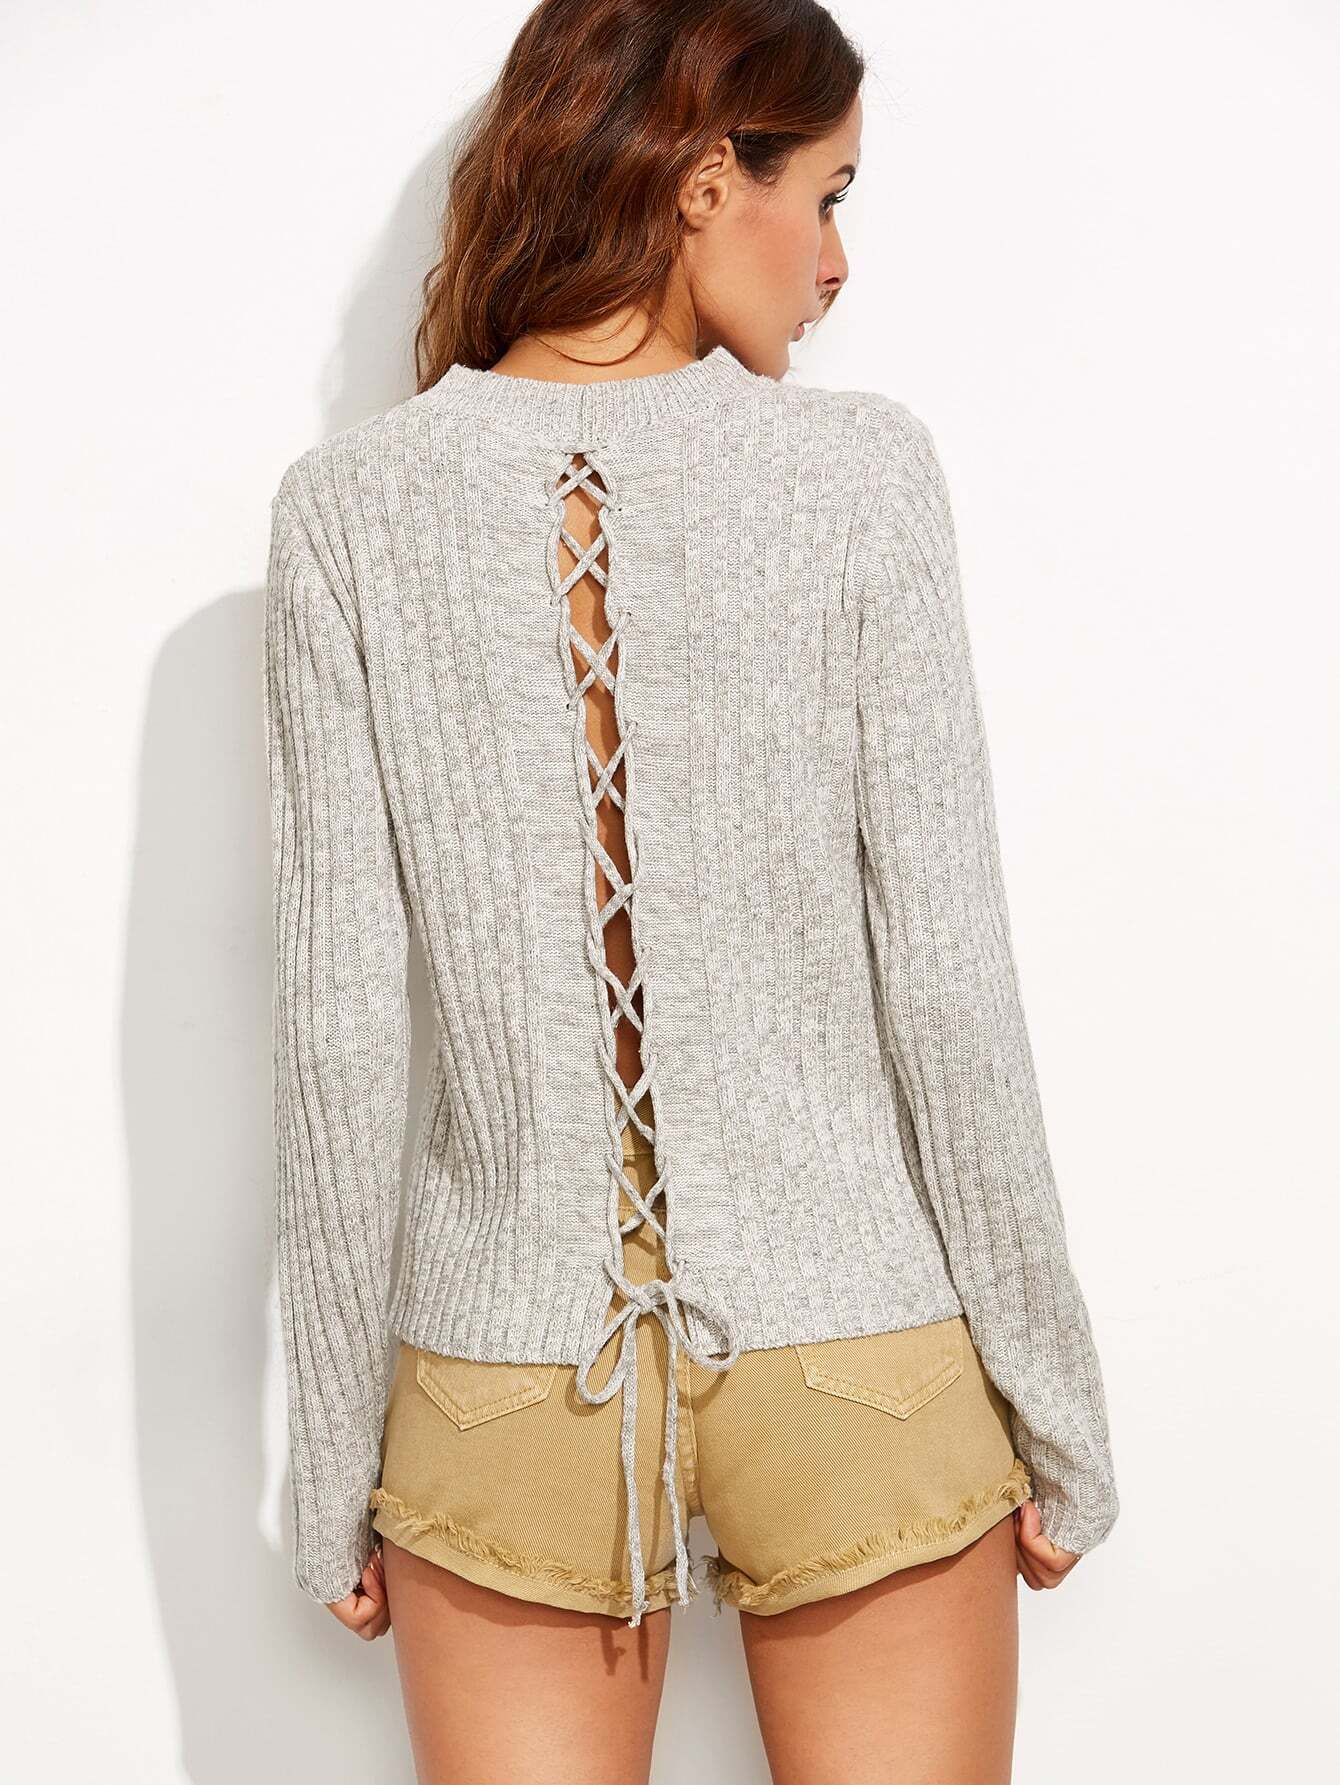 Grey Marled Knit Lace Up Back Ribbed Sweater sweater160811705